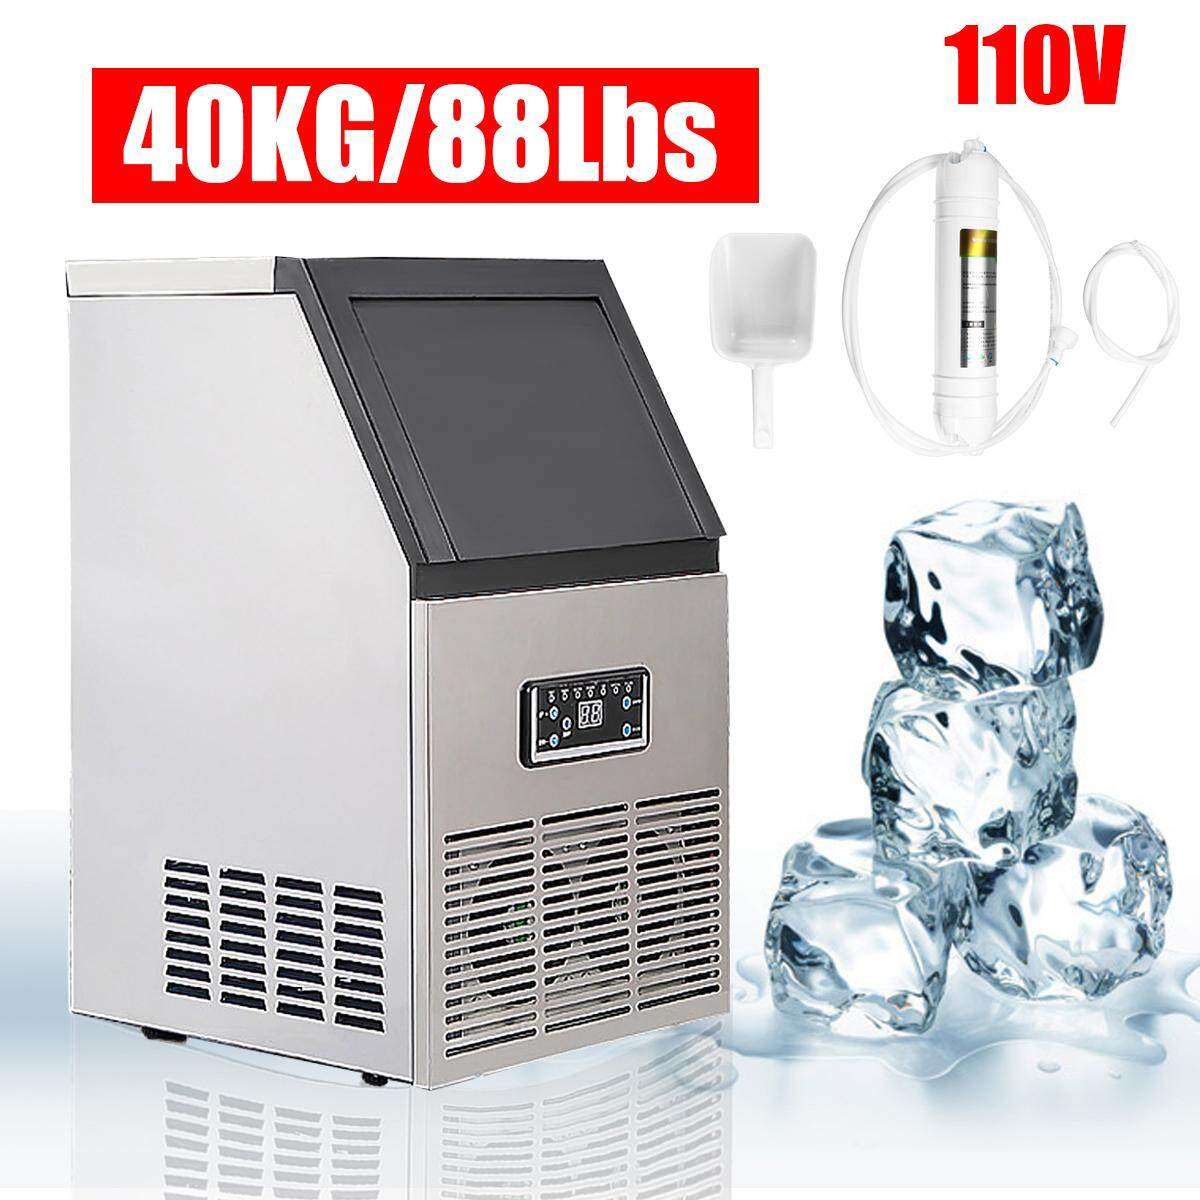 110V commercial ice maker machine 40kg